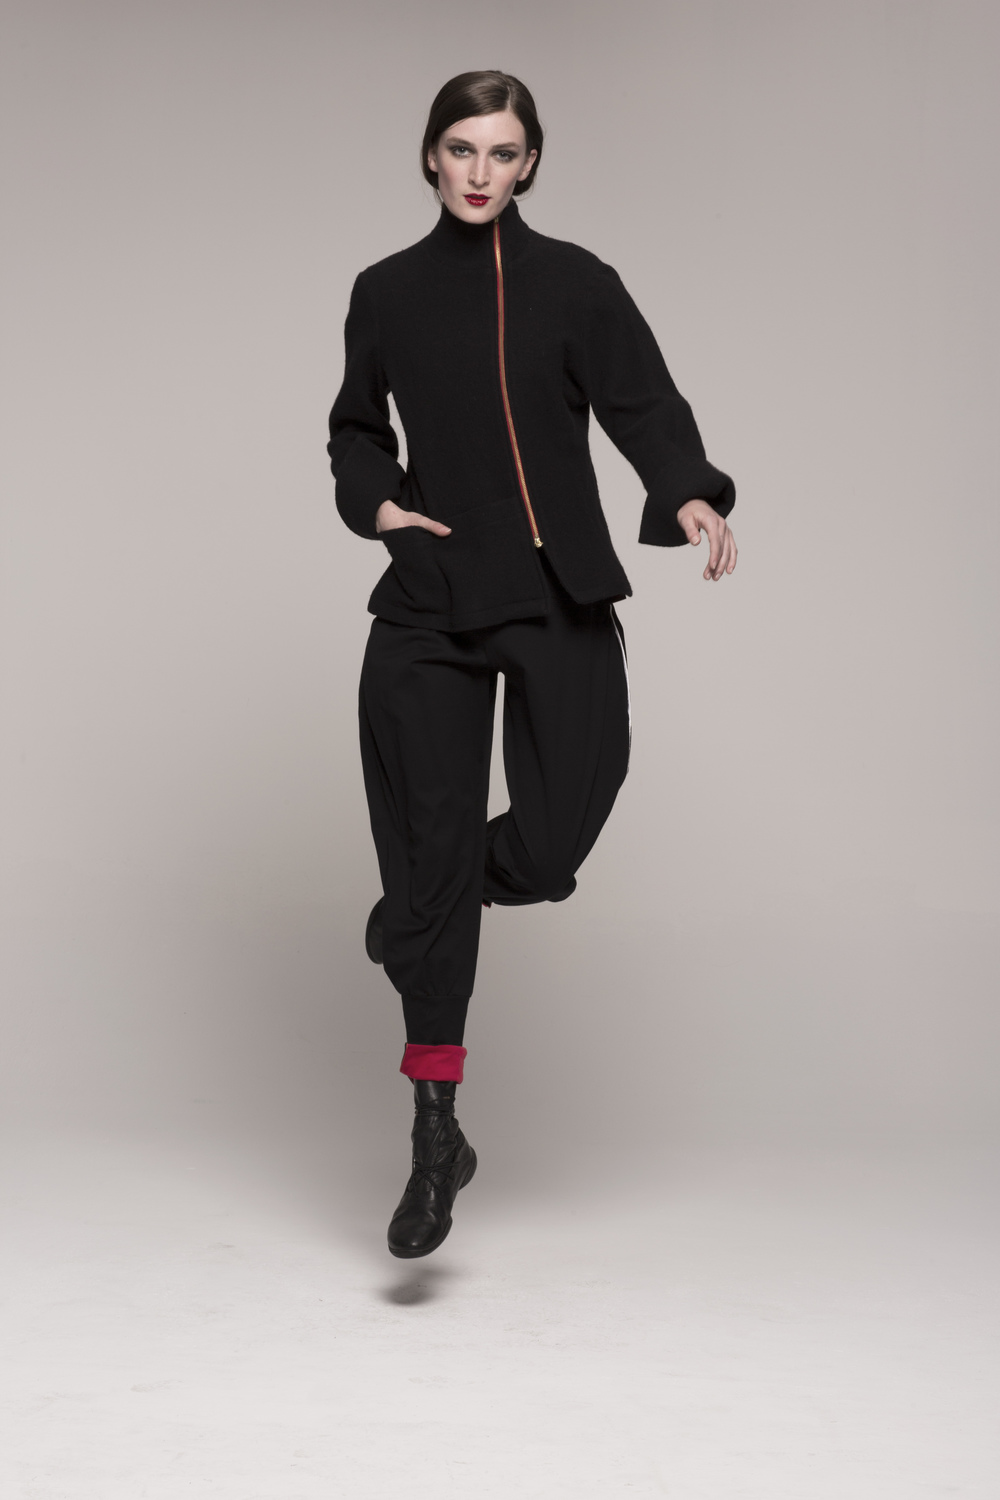 Marine_2016_Boiled_Wool_Jacket_Tracksuit_066 copy.jpg